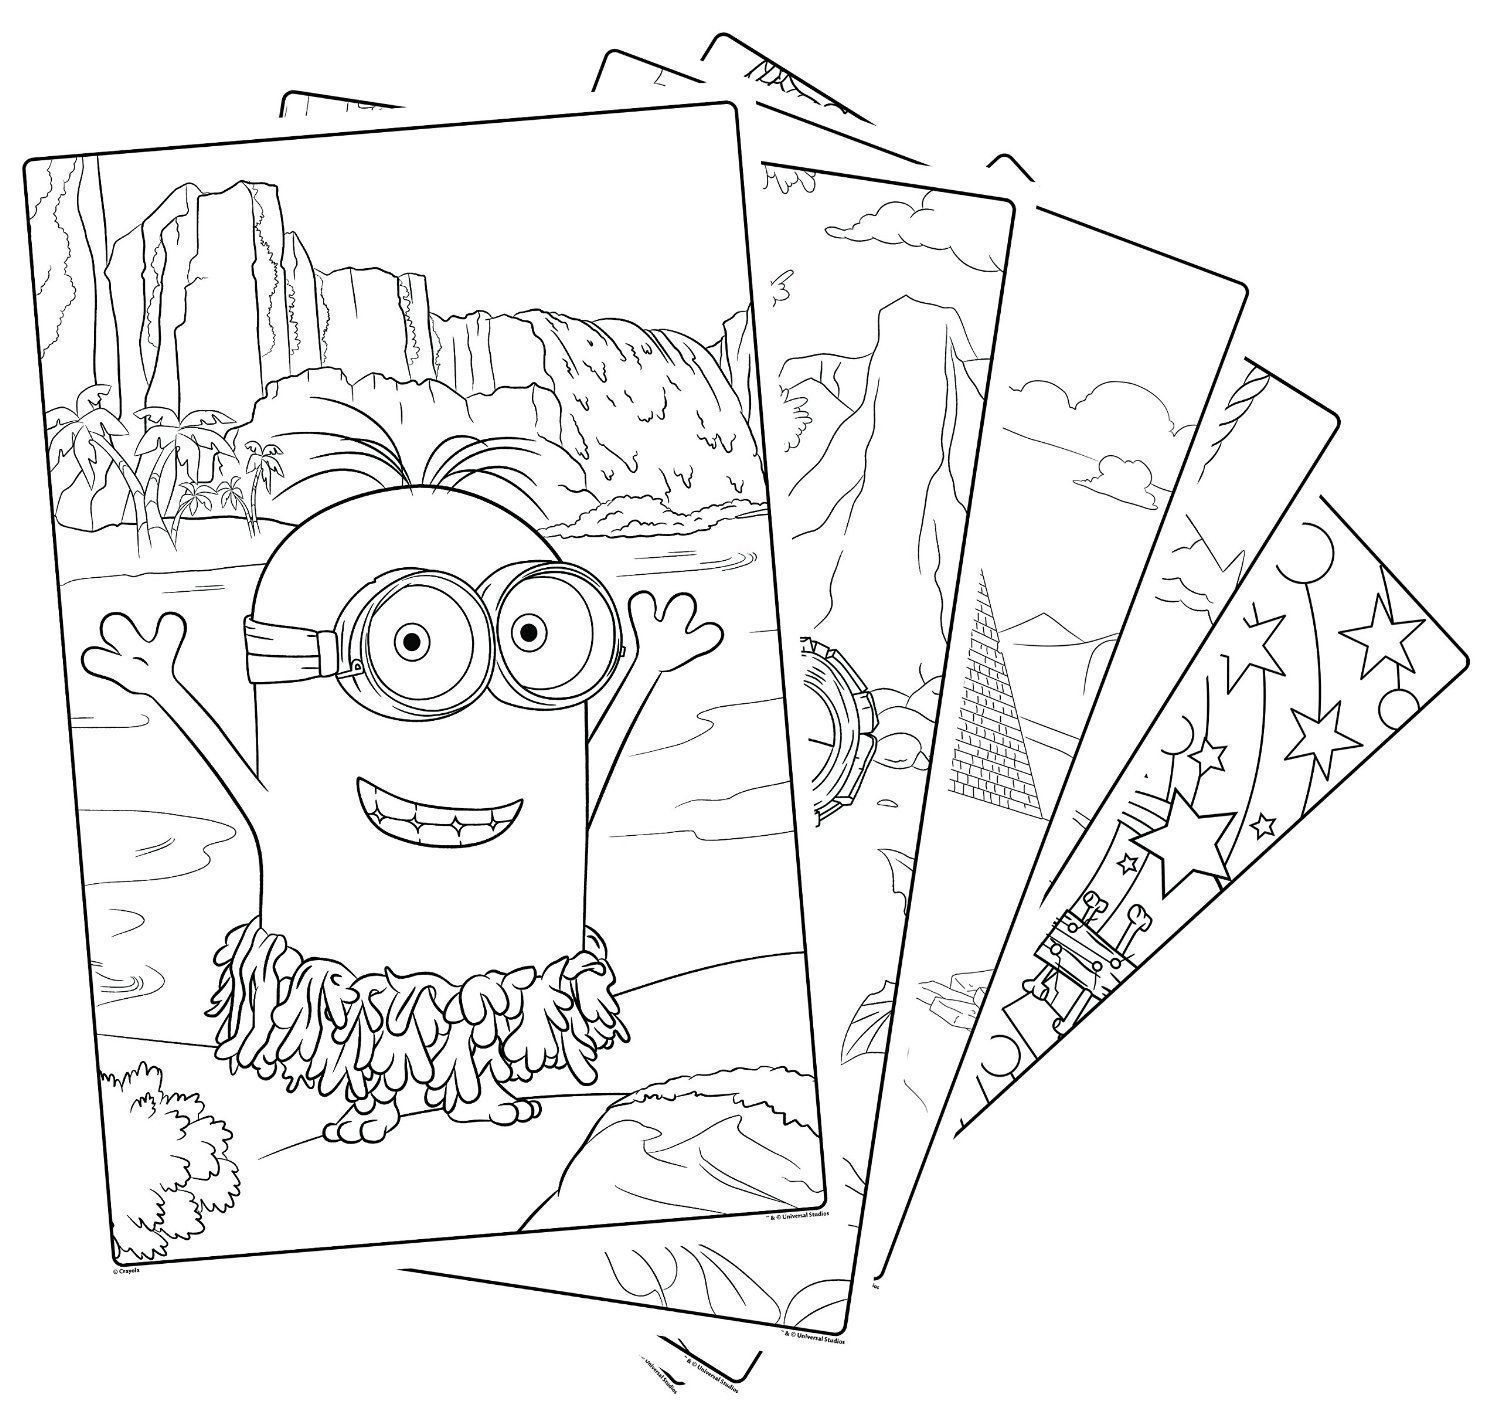 me minions crayola 18 giant colouring pages